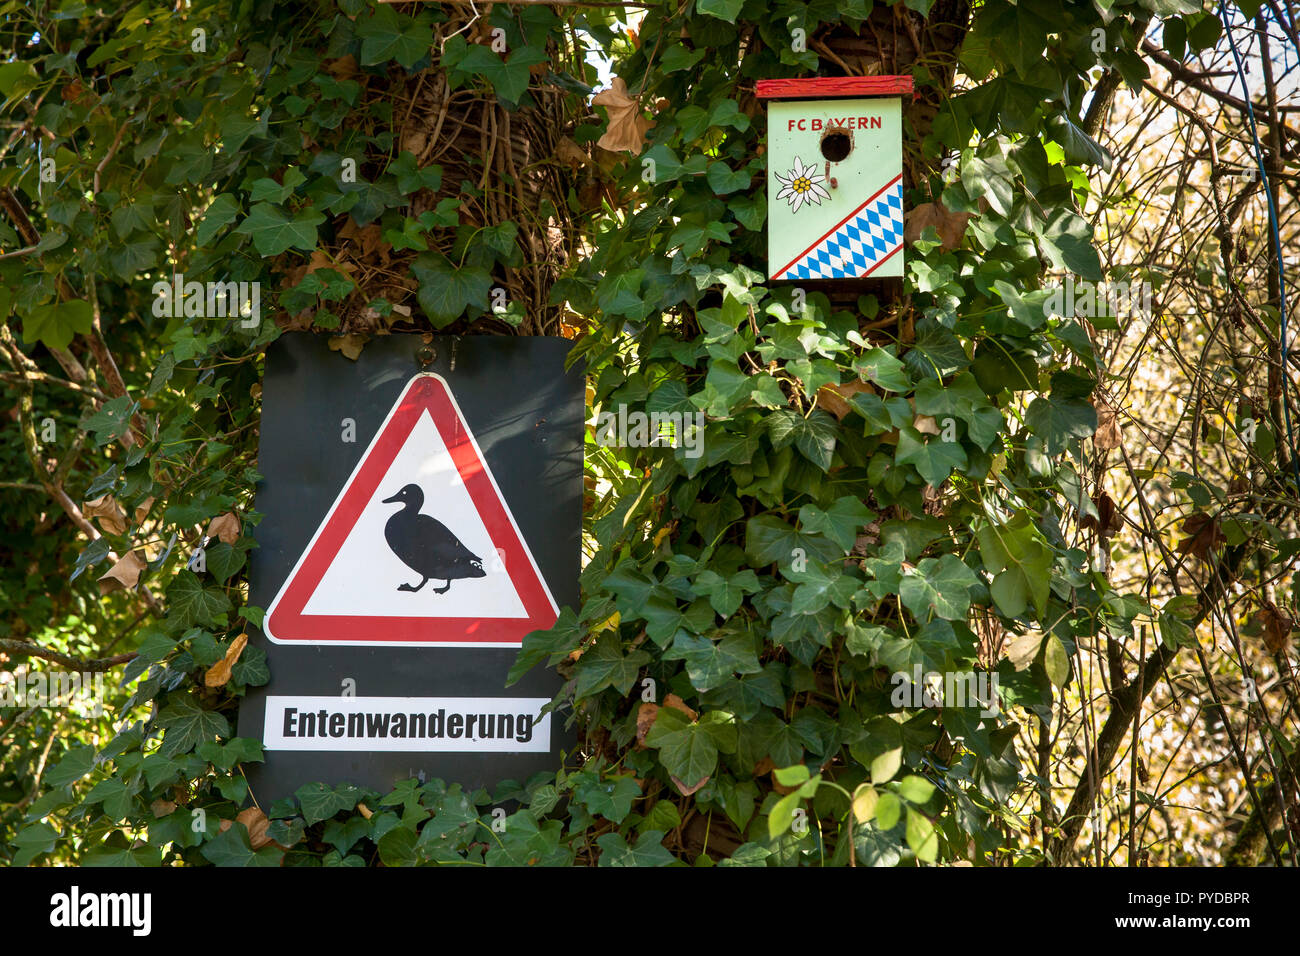 birdhouse of a fan of the fooball club FC Bayern Muenchen  in Herdecke, sign ducks crossing, Germany.  Vogelhaeuschen eines FC Bayern Muenchen Fans in - Stock Image